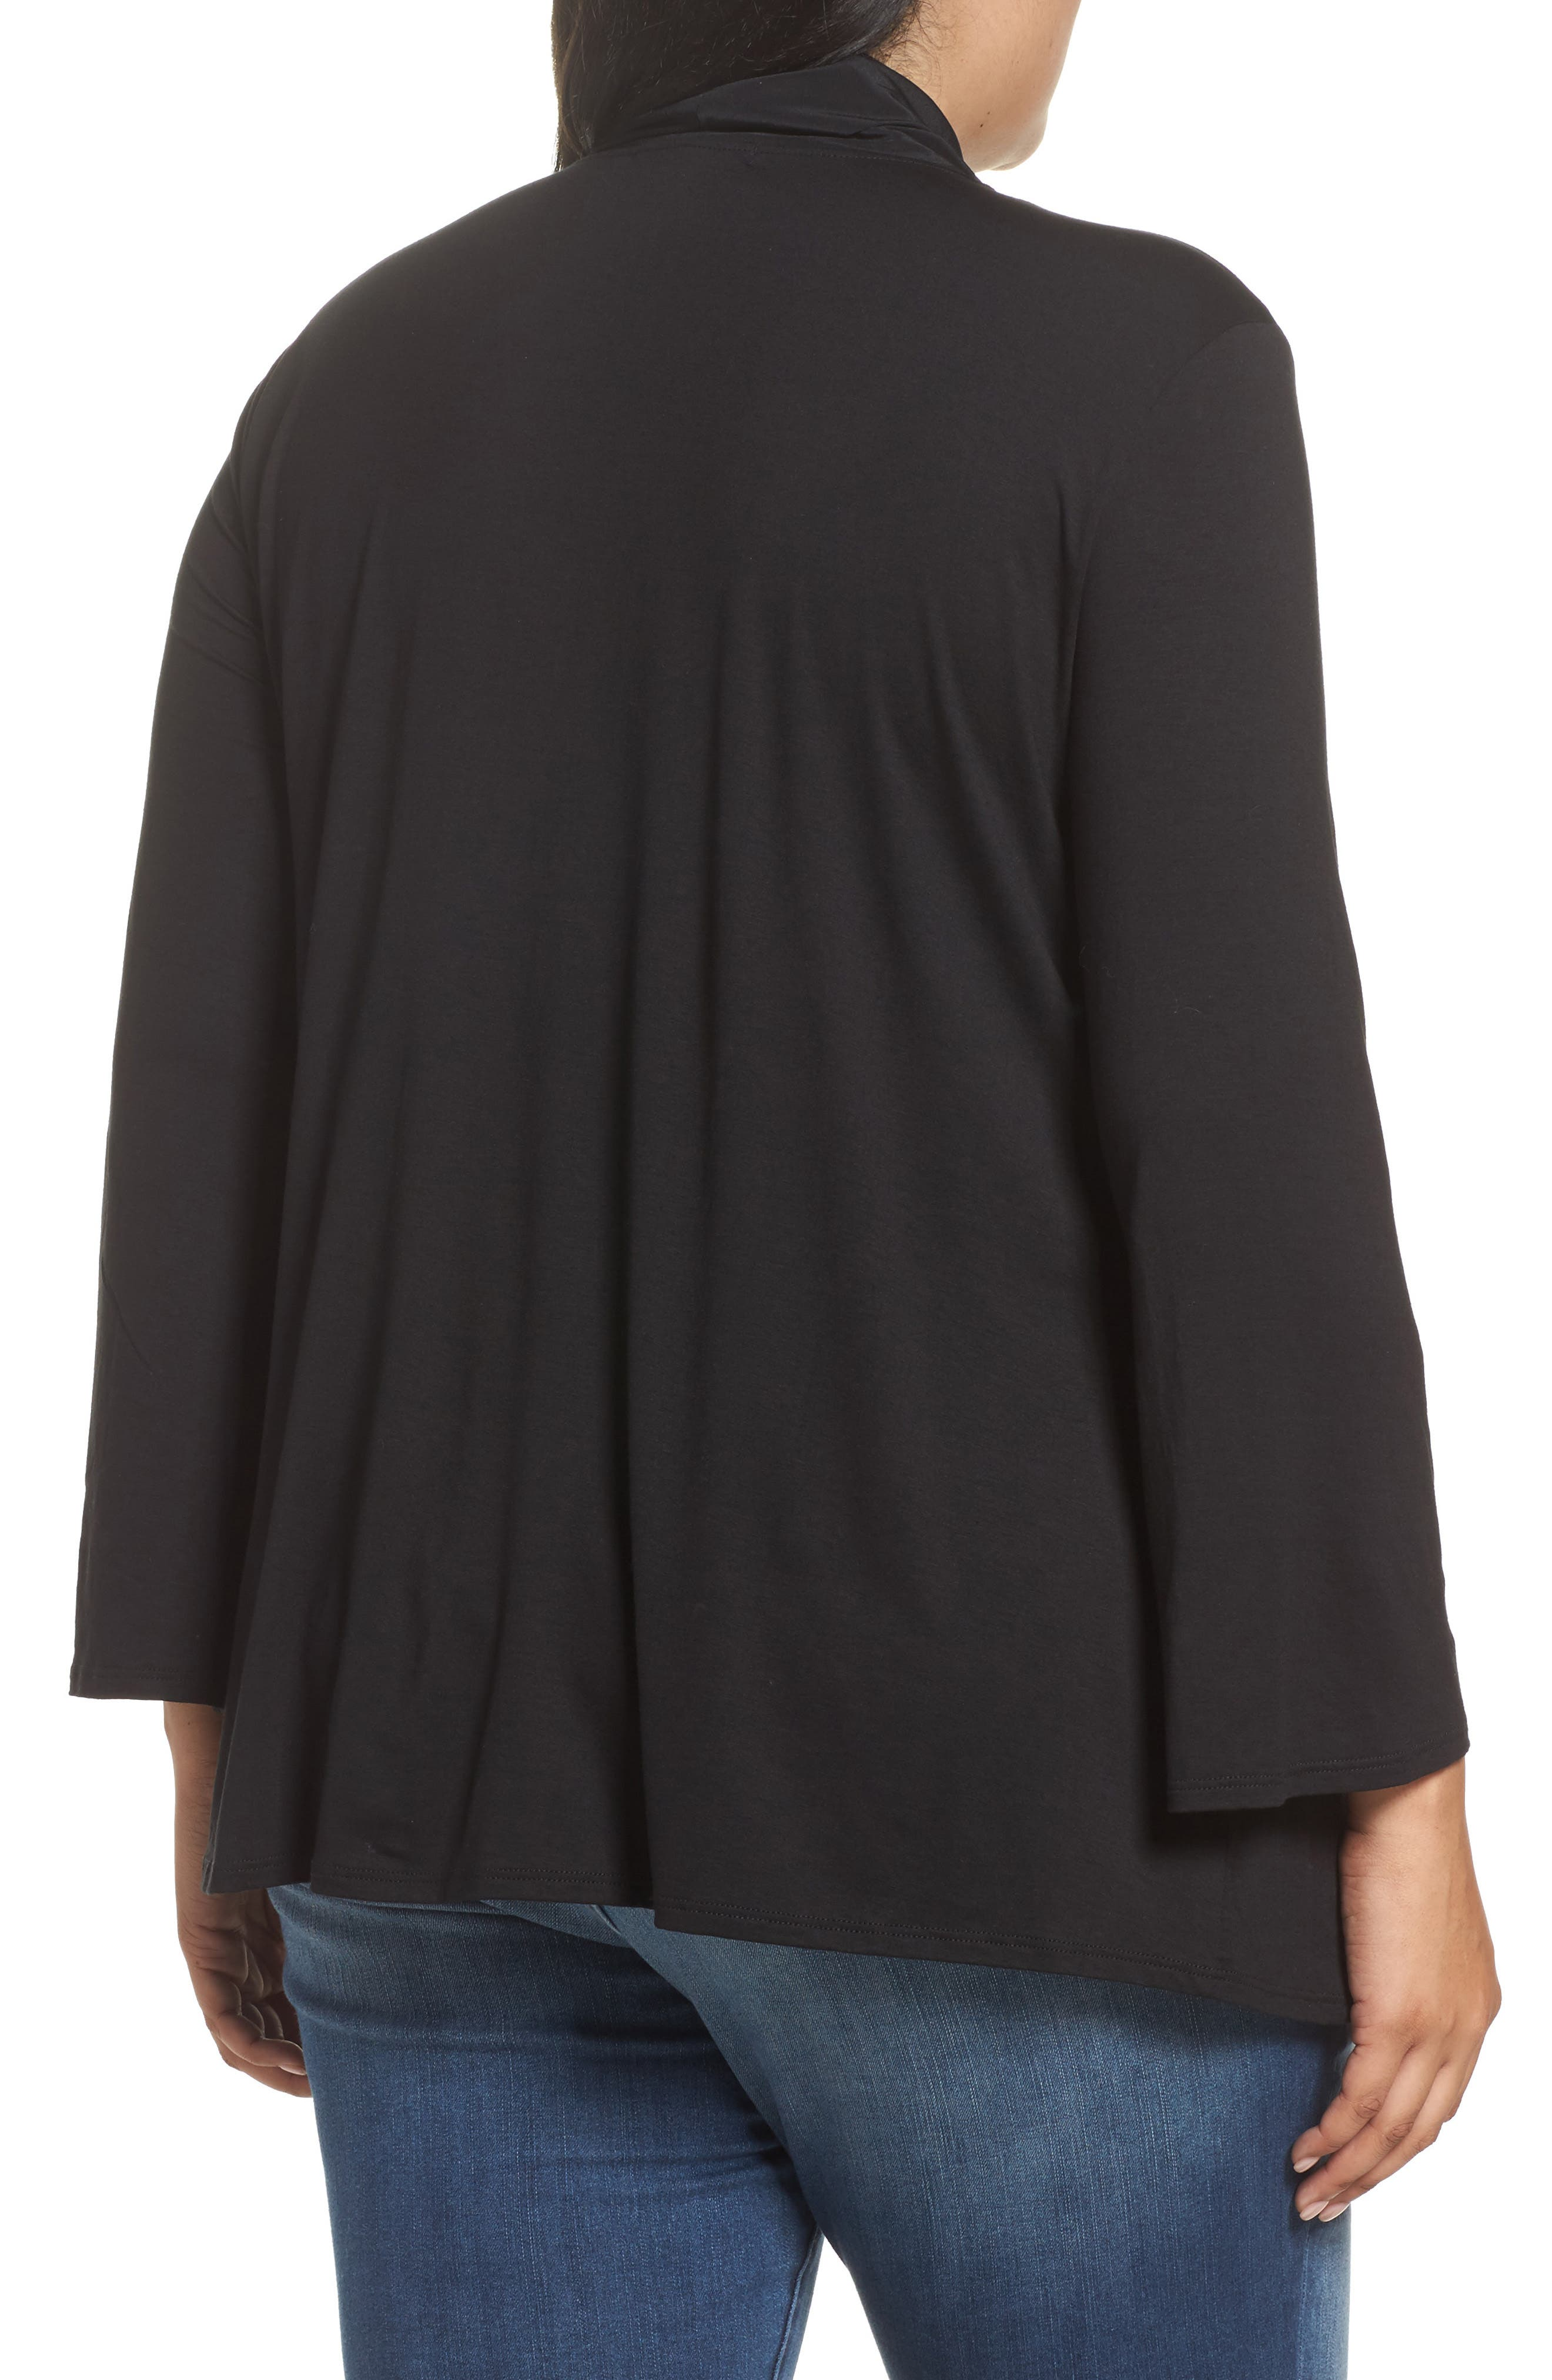 Alternate Image 2  - Three Dots Tie Neck Jersey Top (Plus Size)